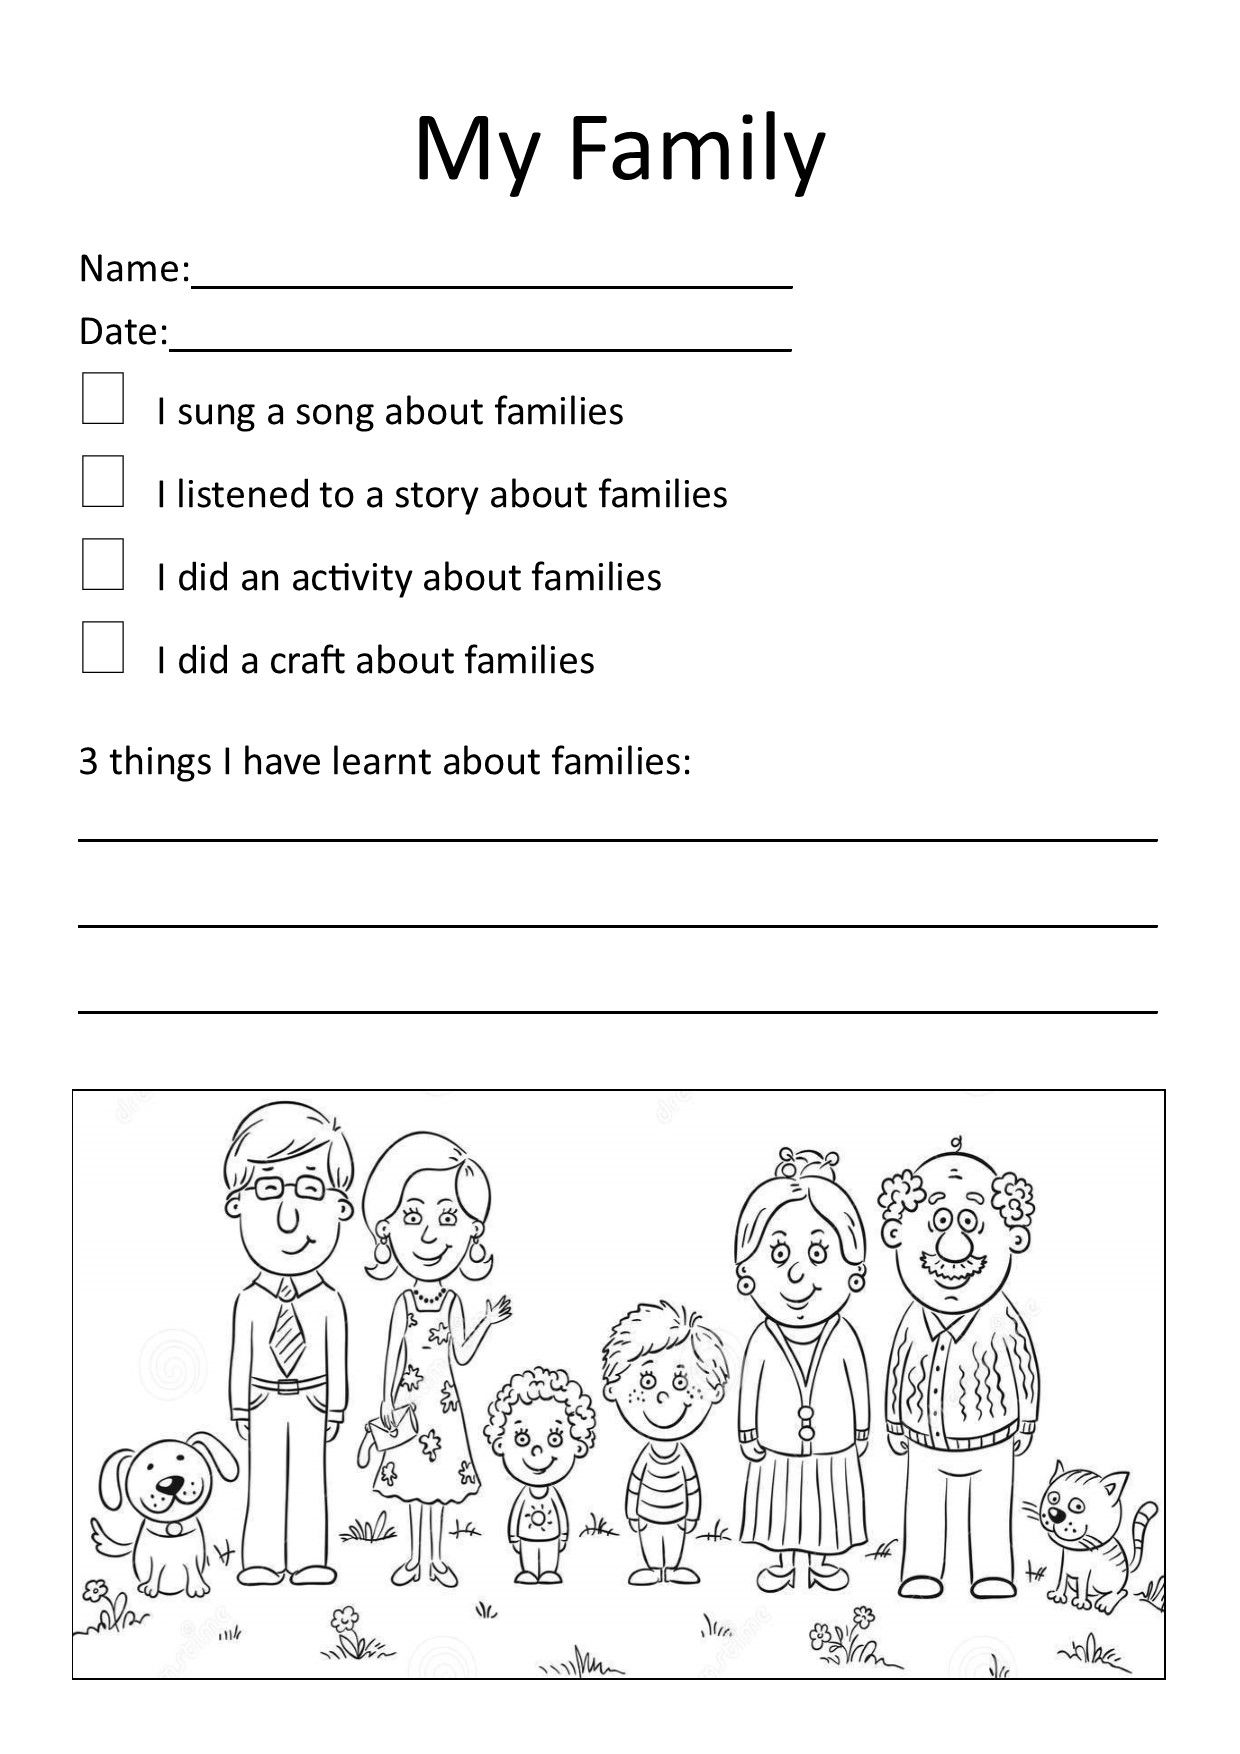 My Family Worksheet